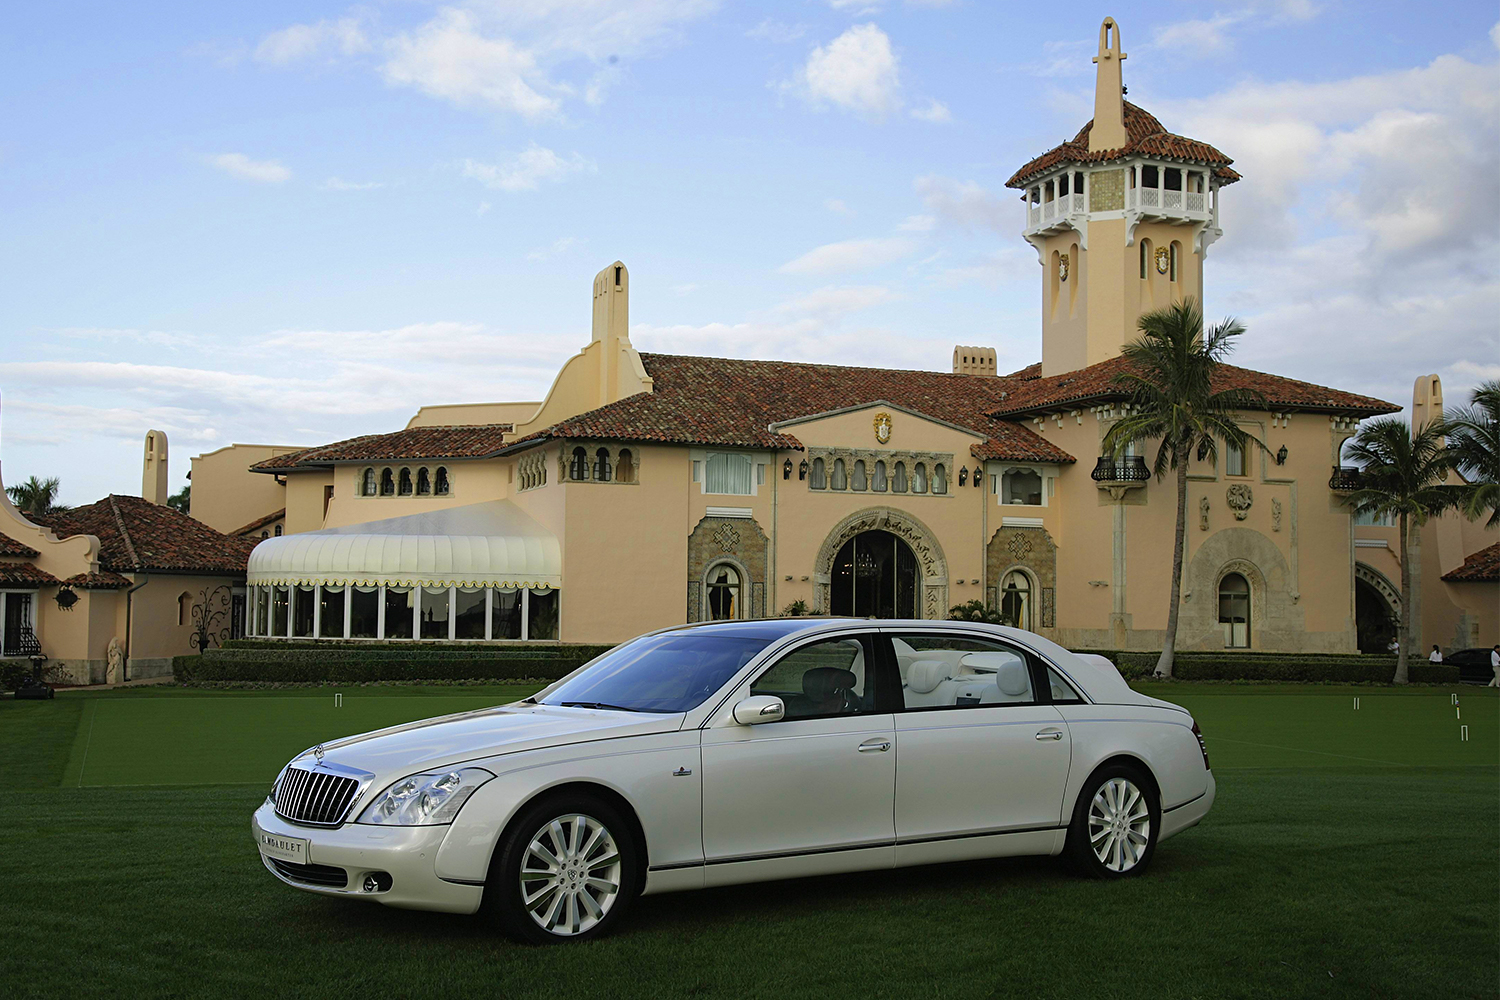 A Maybach Landaulet car in front of Mar-a-Lago in 2007